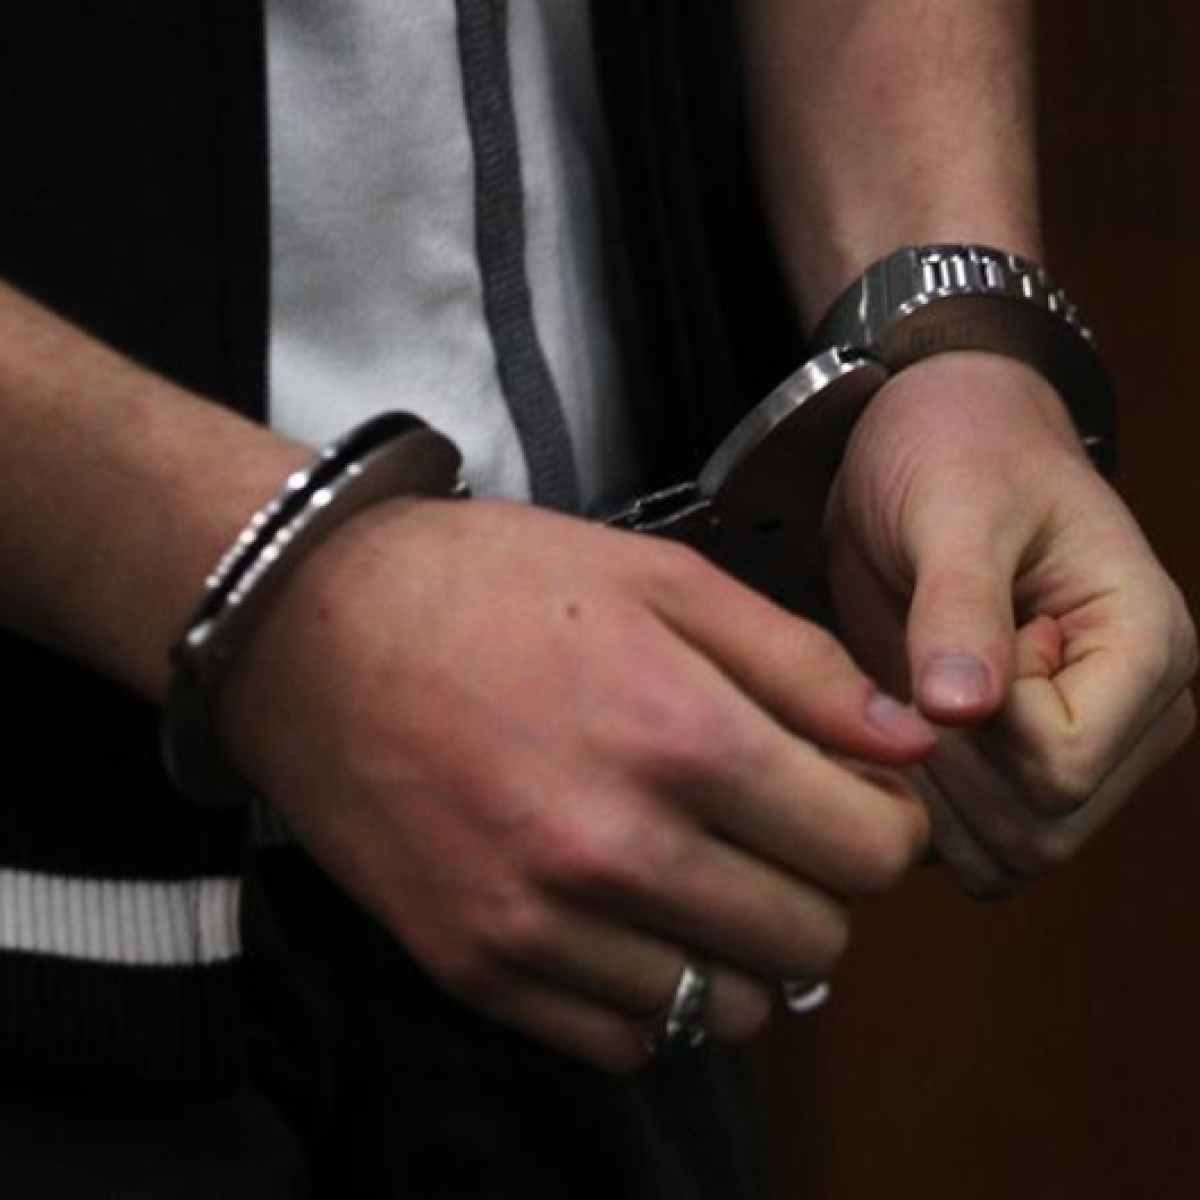 Mumbai Crime Watch: 22-year-old arrested for killing his friend over Rs 150